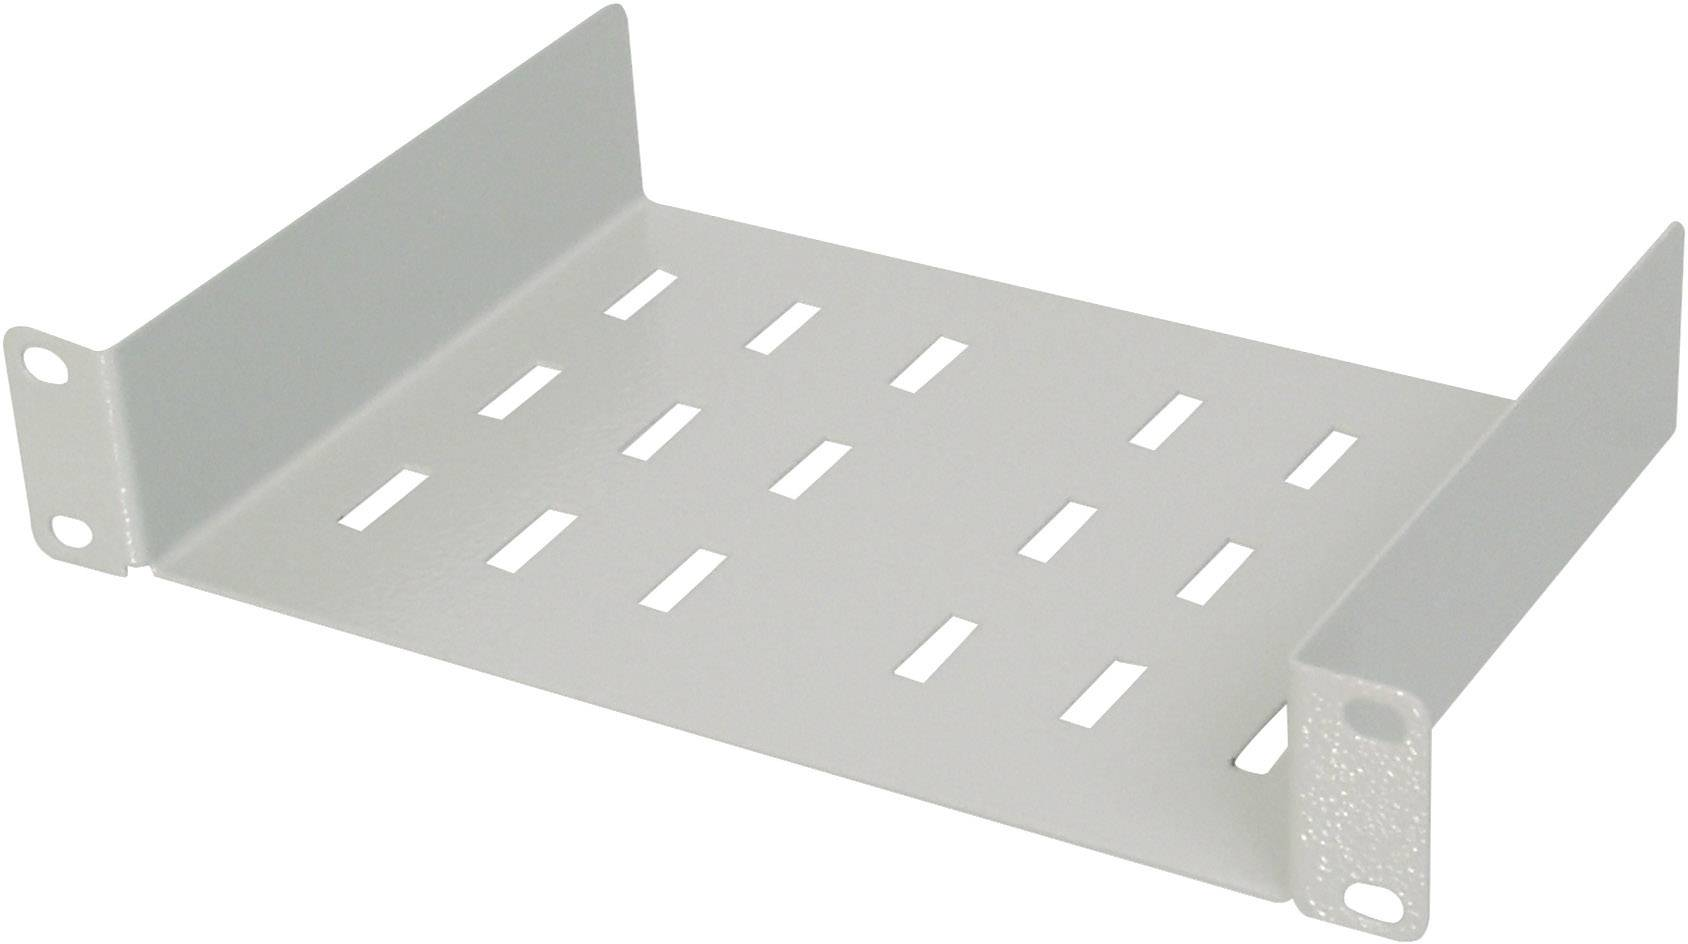 digitus dn 10 tray 1 10 inch server rack cabinet shelf fixed grey white ral 7035